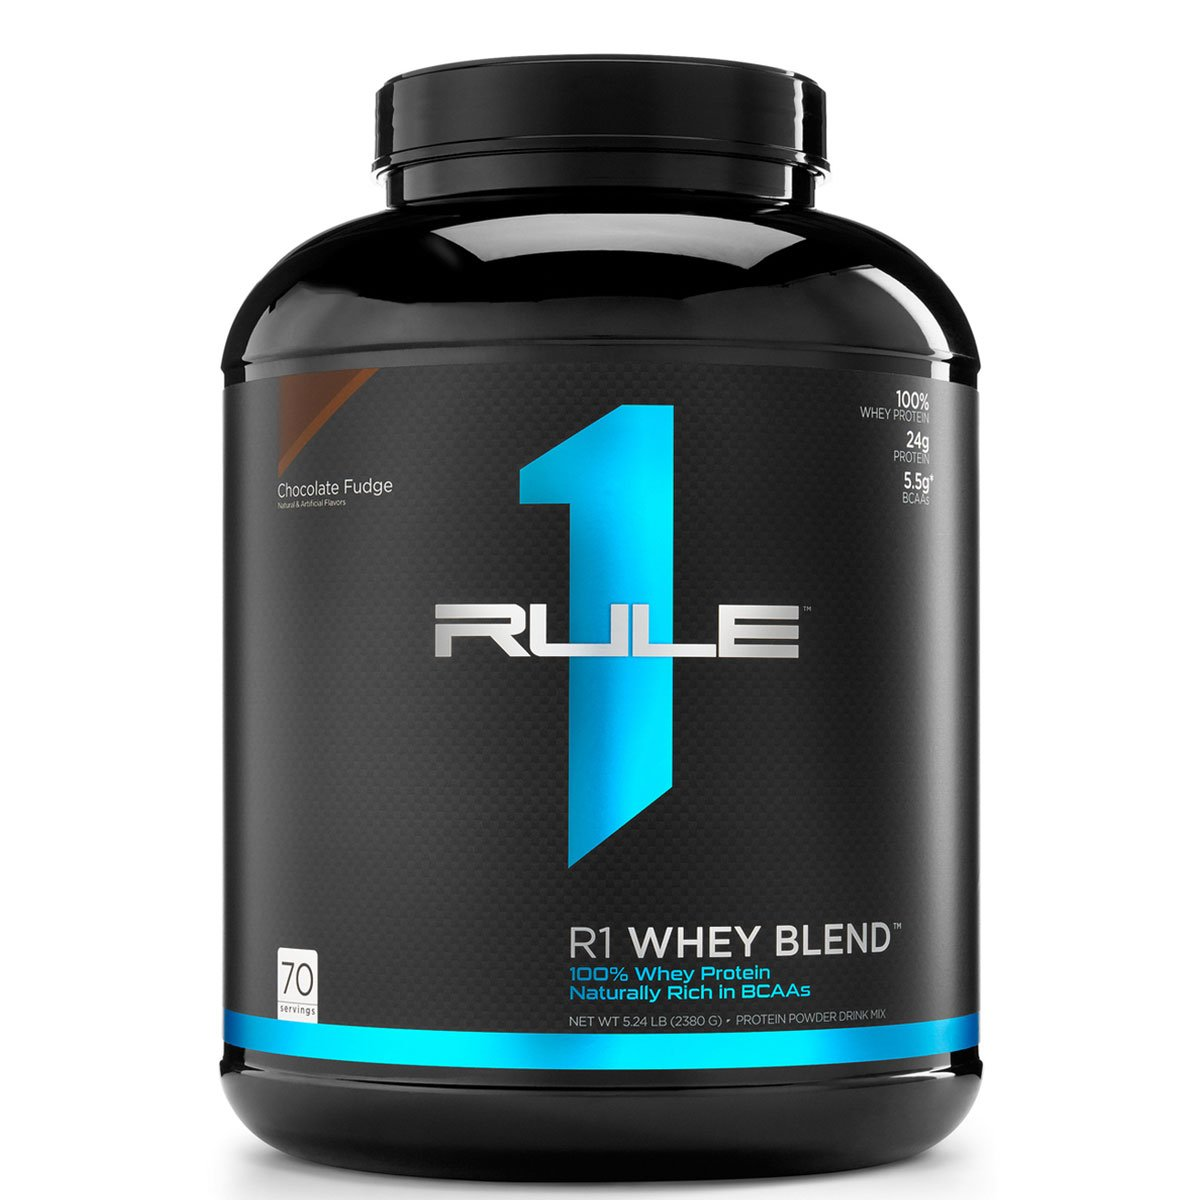 RuleOneProteins R1 Whey Blend Protein Rule1 Birthday Cake